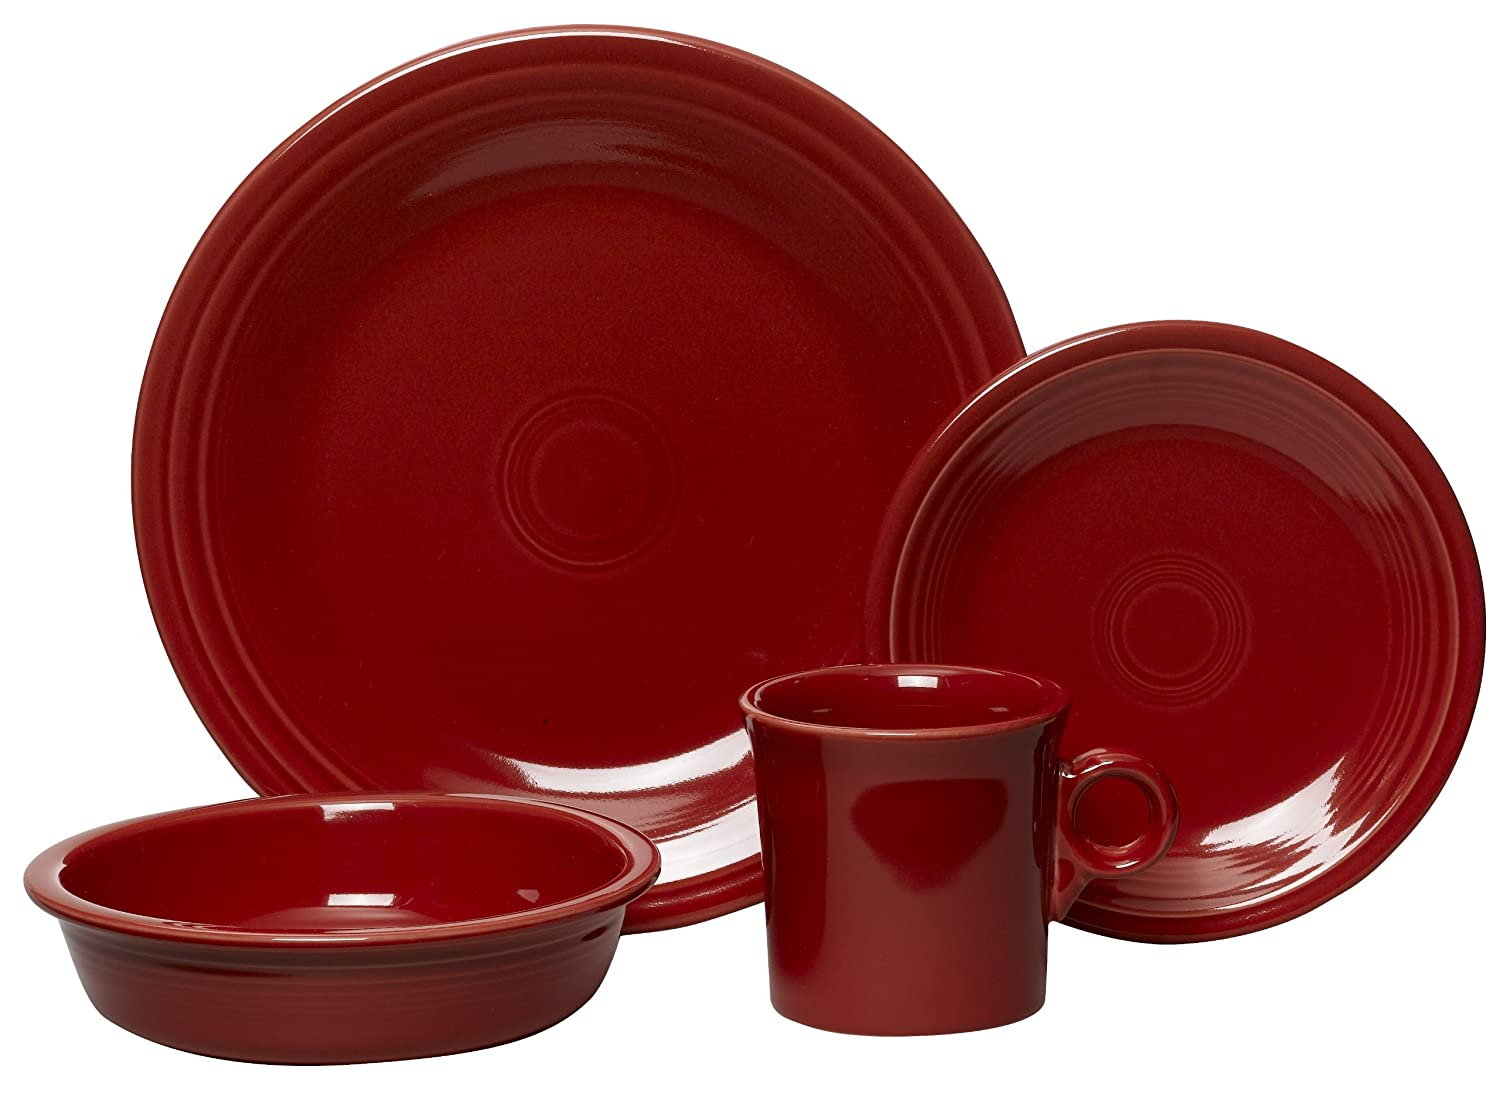 Amazon.com | Fiesta 4-Piece Place Setting Scarlet Dinnerware Sets Dinnerware Sets  sc 1 st  Amazon.com & Amazon.com | Fiesta 4-Piece Place Setting Scarlet: Dinnerware Sets ...